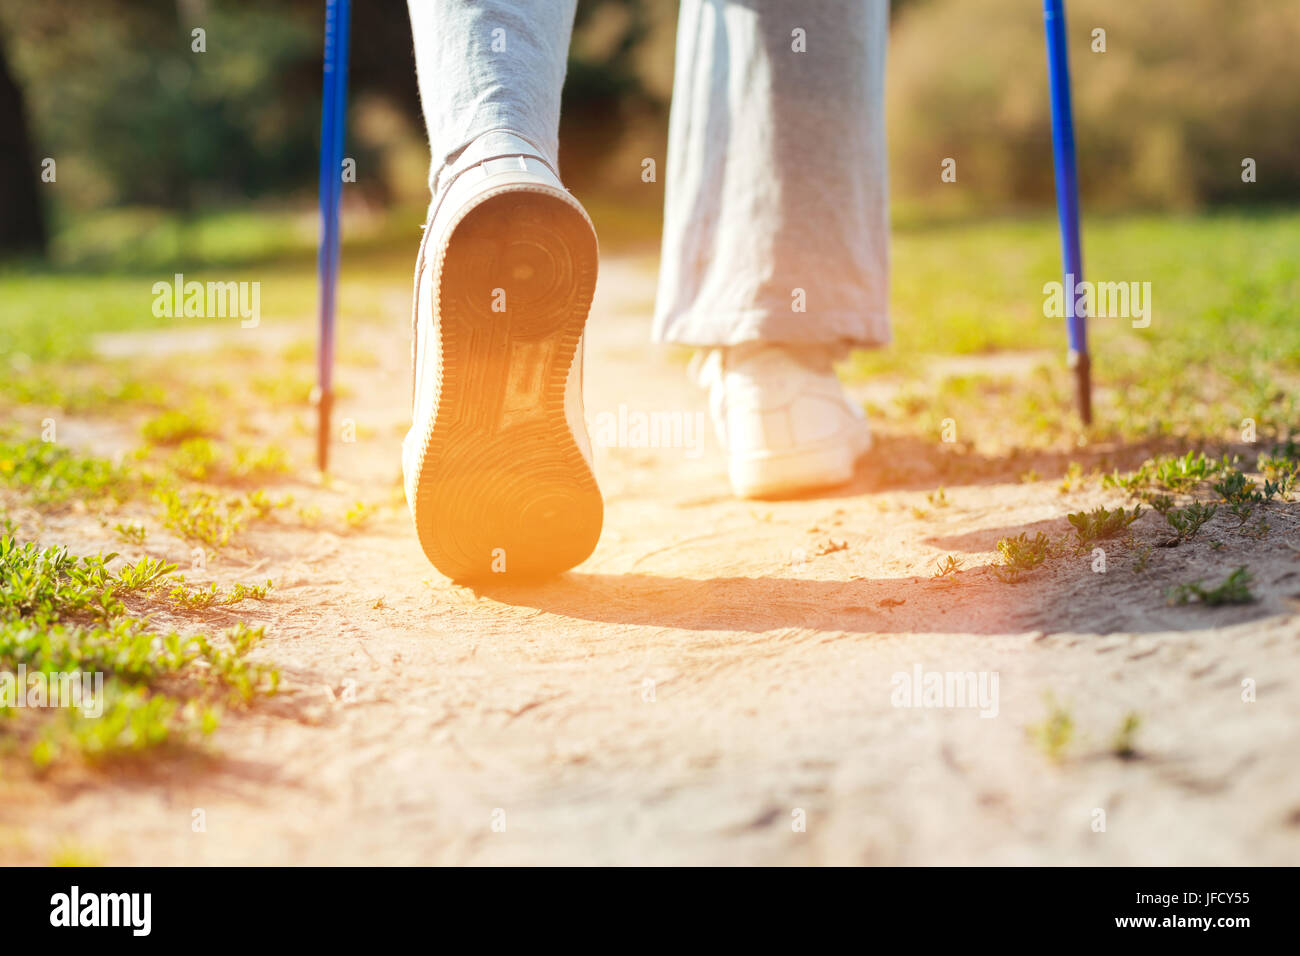 Movement is life. Close up of a person holding Nordic walking poles and going forward while being in the park - Stock Image